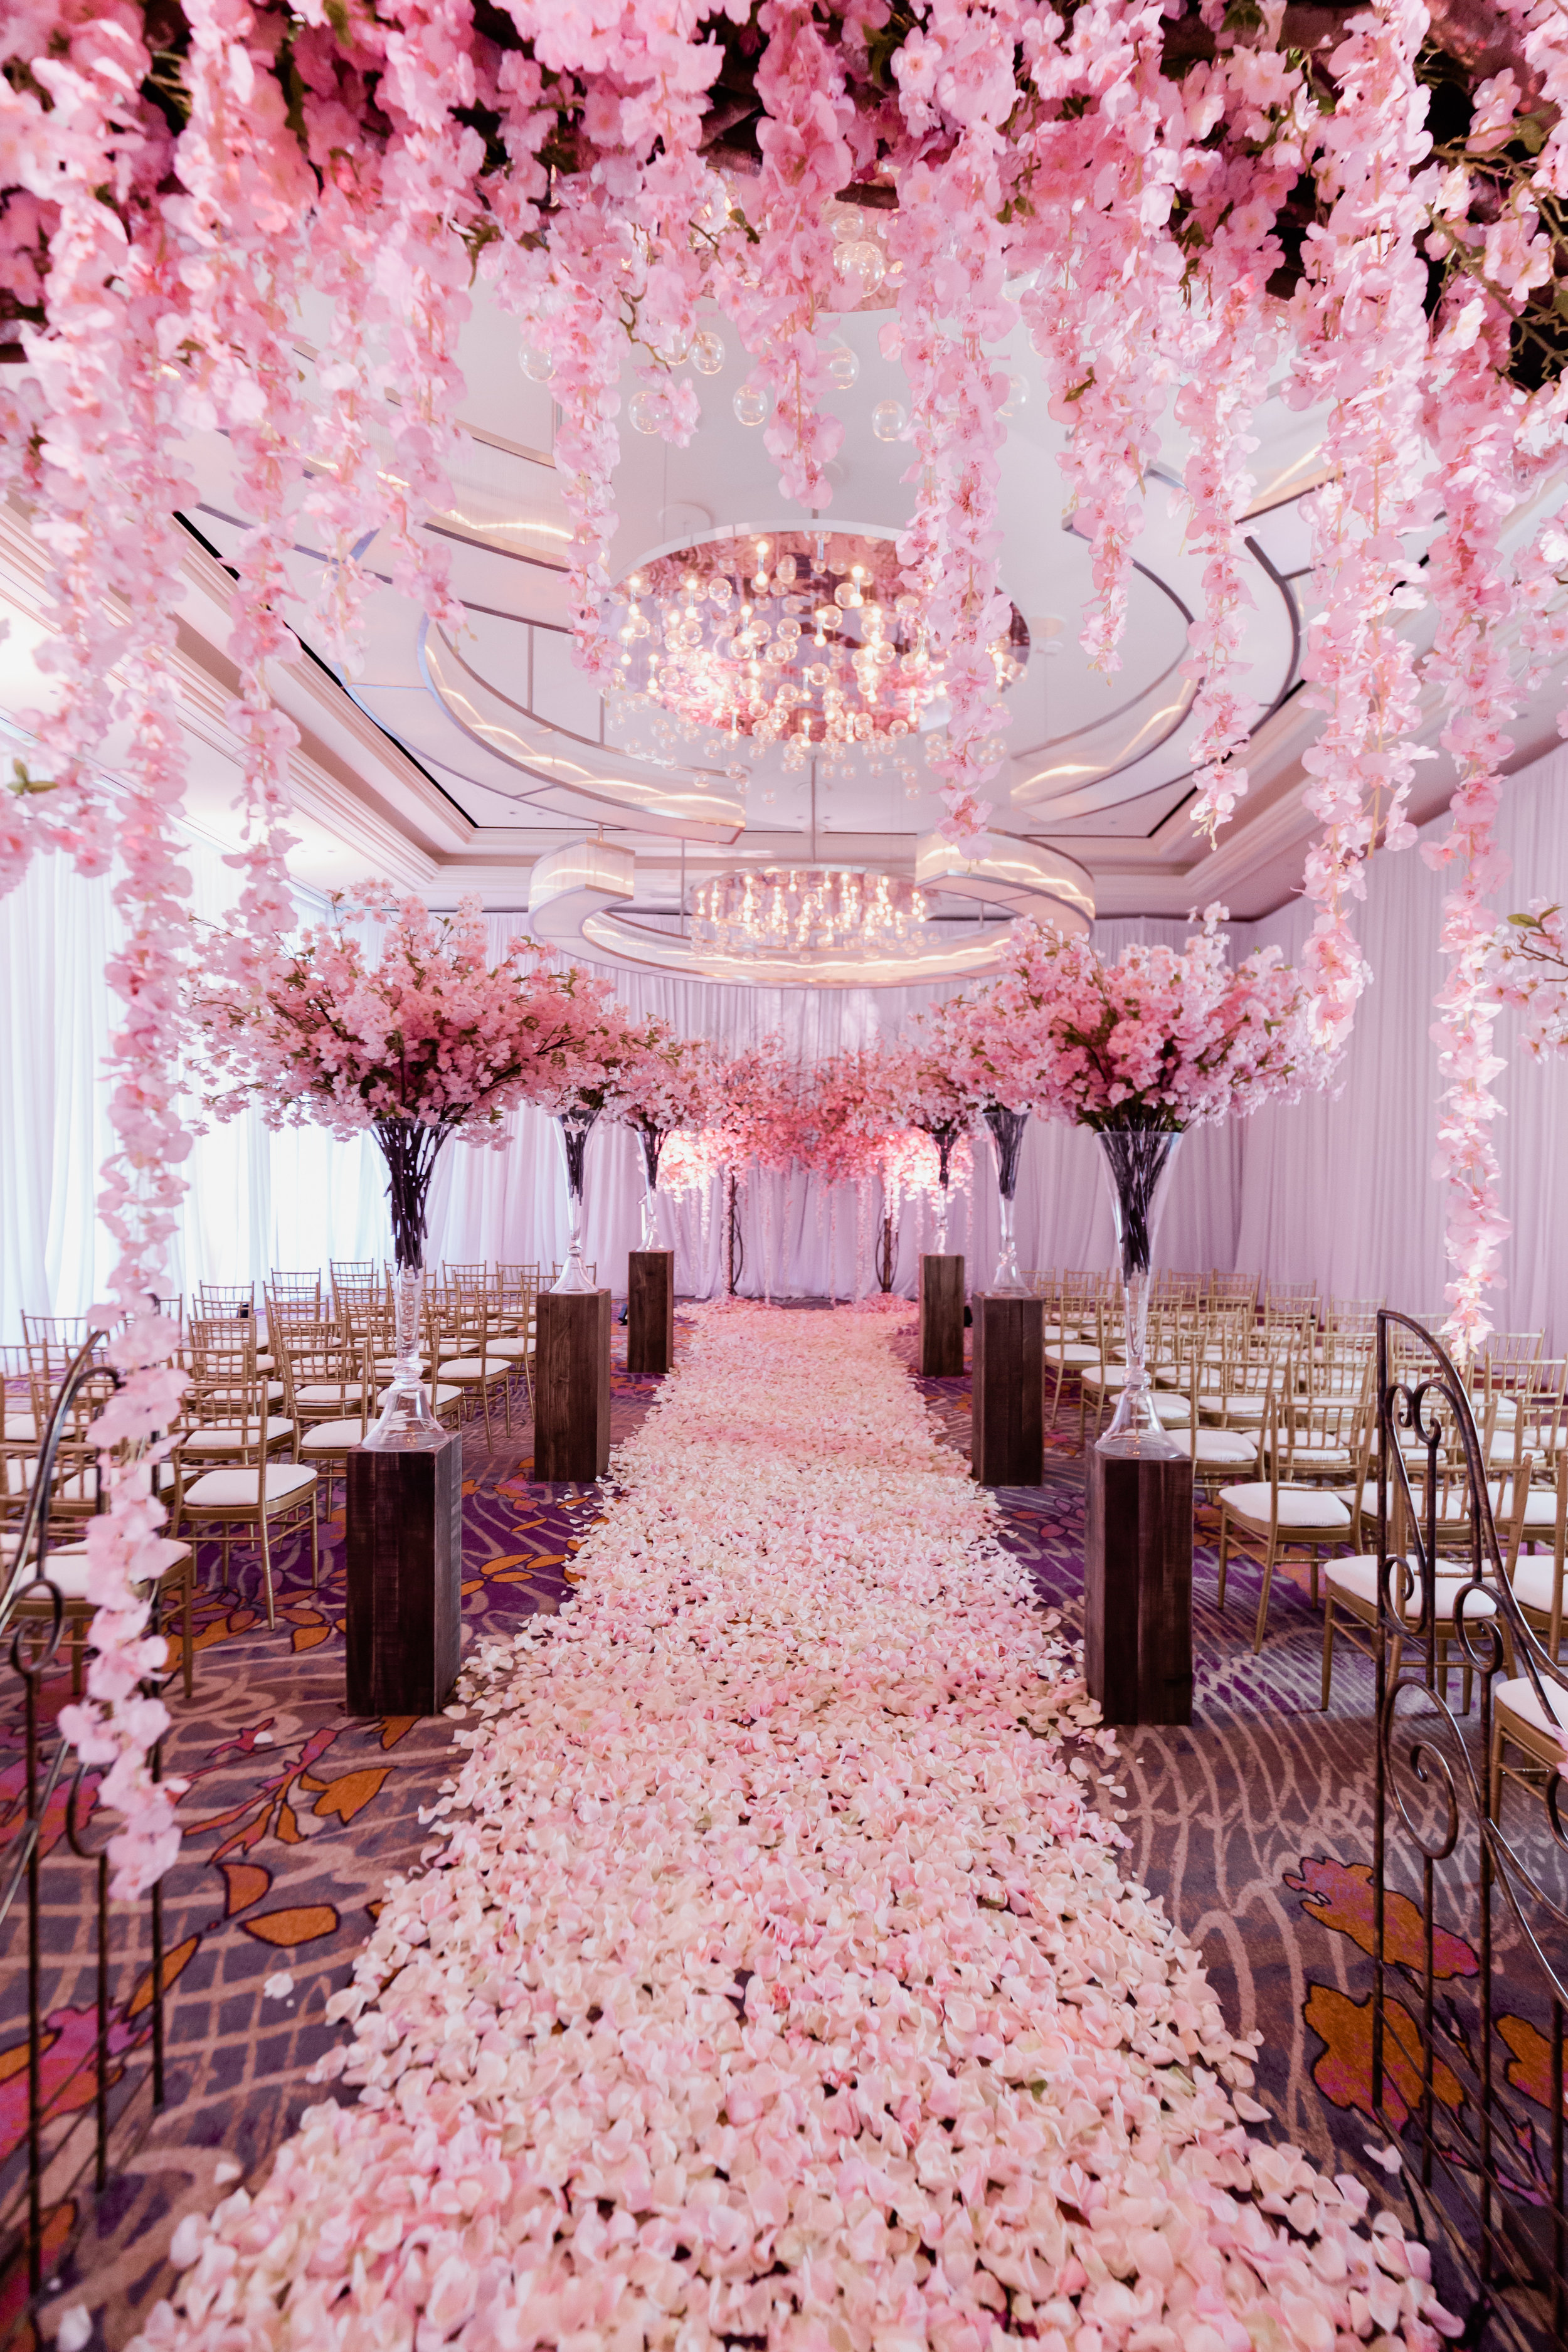 Pretty in Pink Cherry Blossom wedding in Las Vegas. Wedding Planning and Event Design by Andrea Eppolito www.andreaeppolitoevents.com. Photos by Adam Frazier.